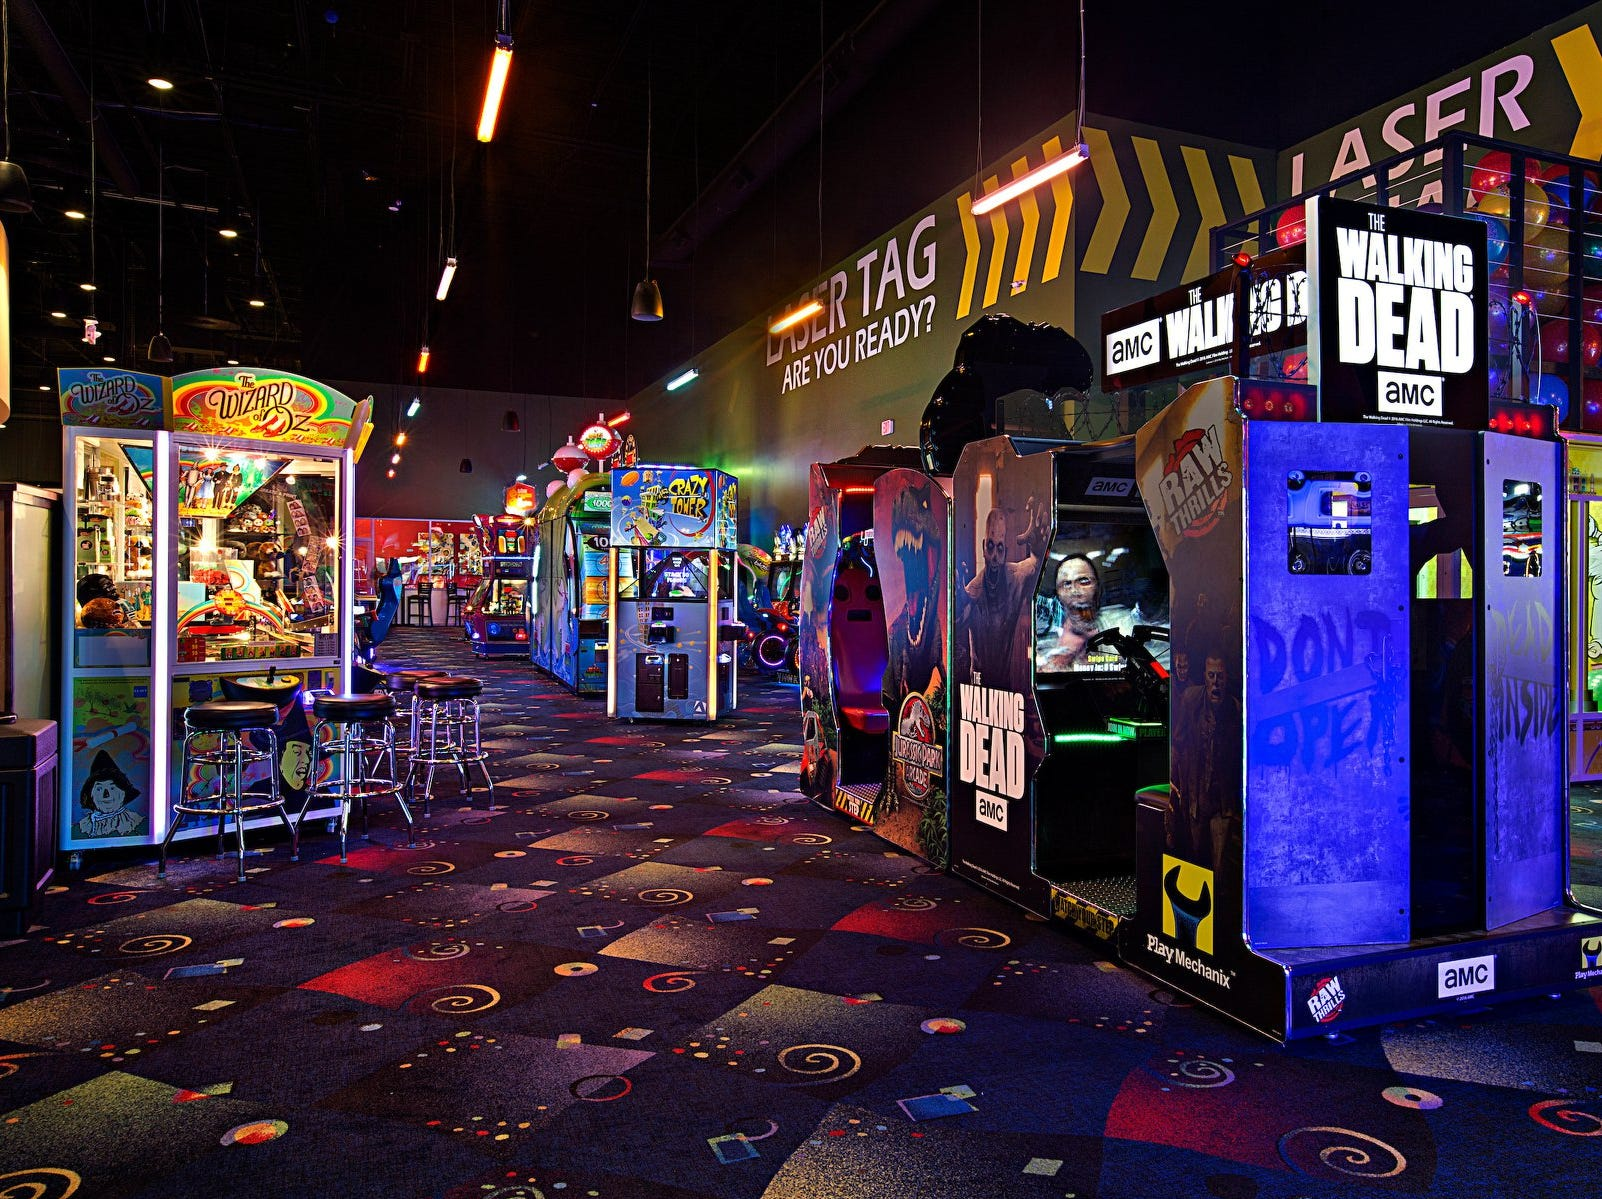 Stars and Strikes brings new entertainment, family fun to Smyrna